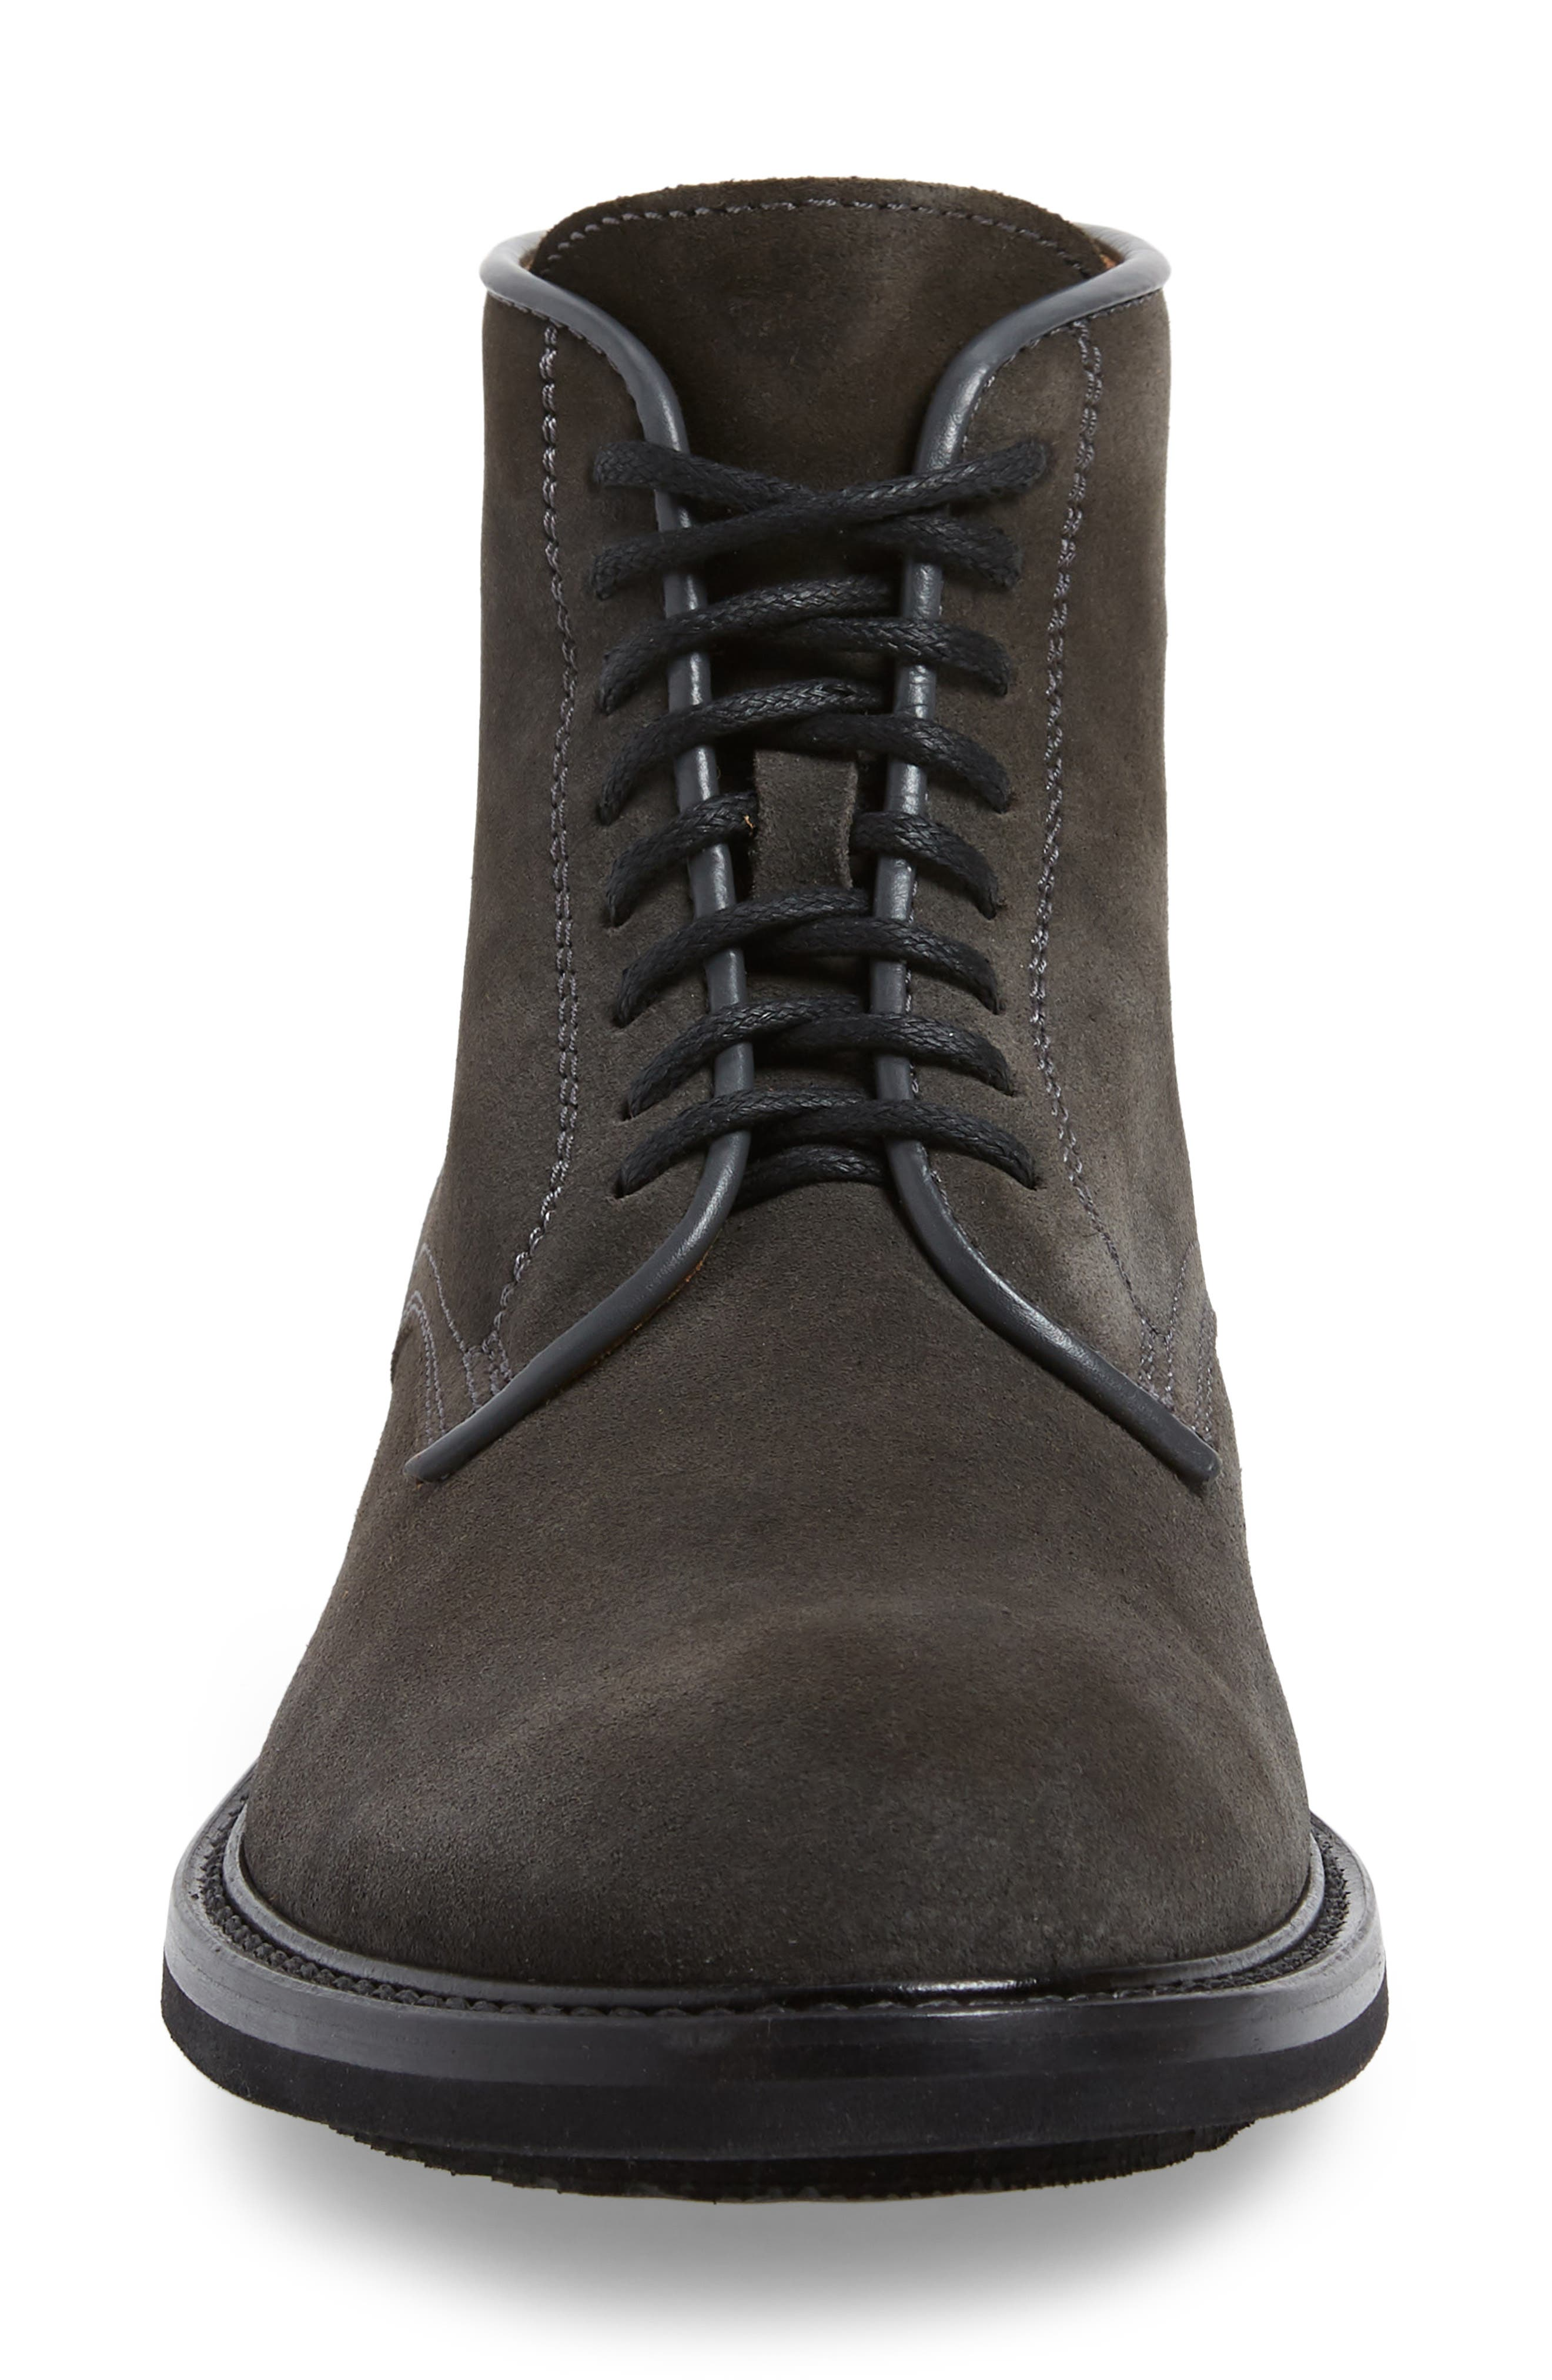 AQUATALIA, Renzo Weatherproof Lace-Up Boot, Alternate thumbnail 4, color, DARK CHARCOAL